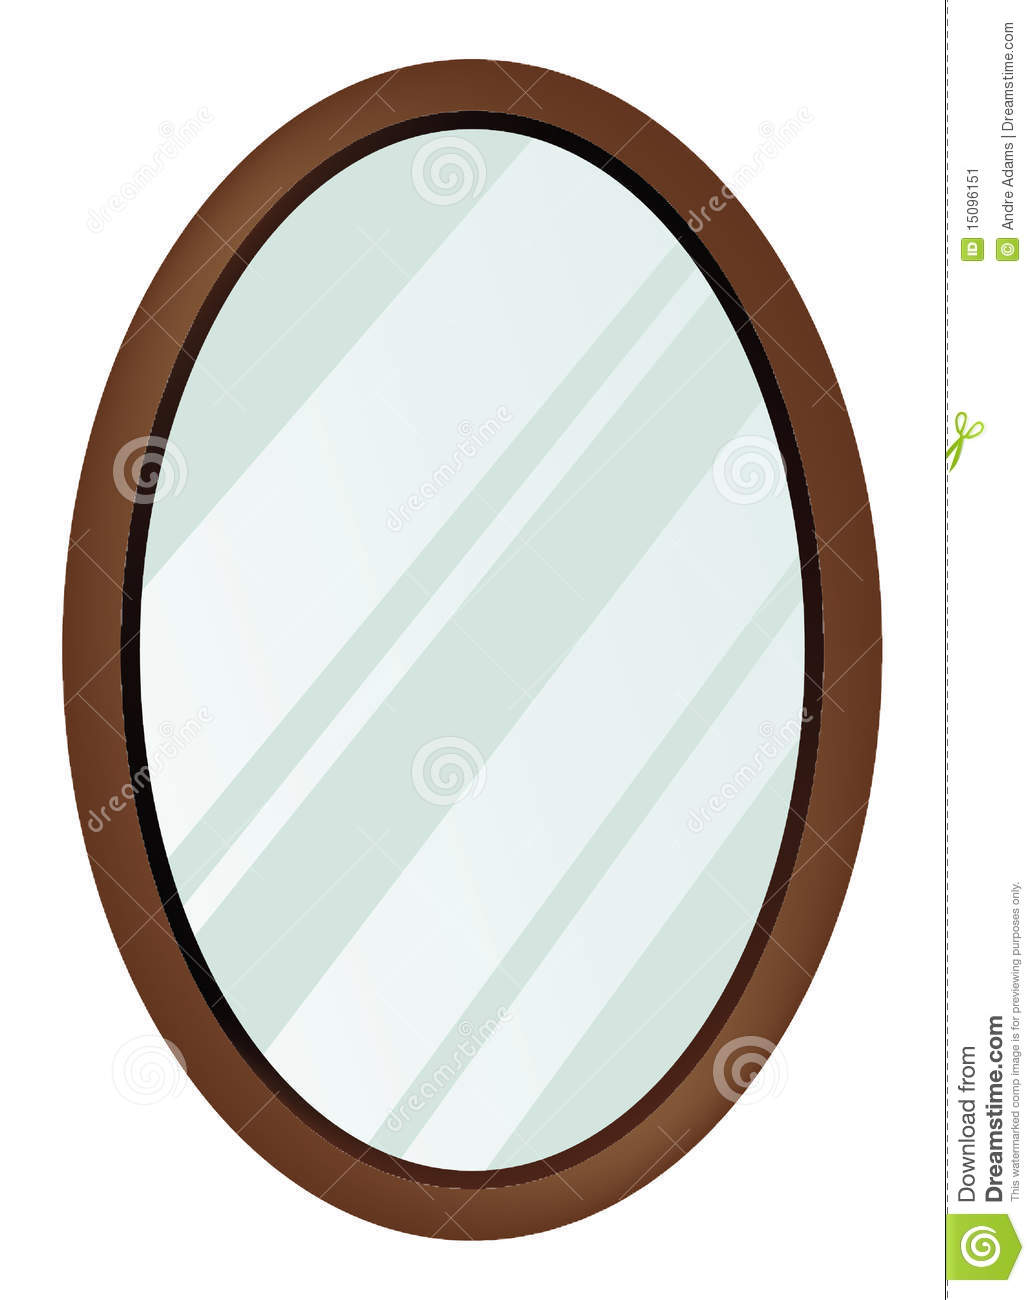 Miroir ovale illustration de vecteur illustration du for Dessin miroir bris